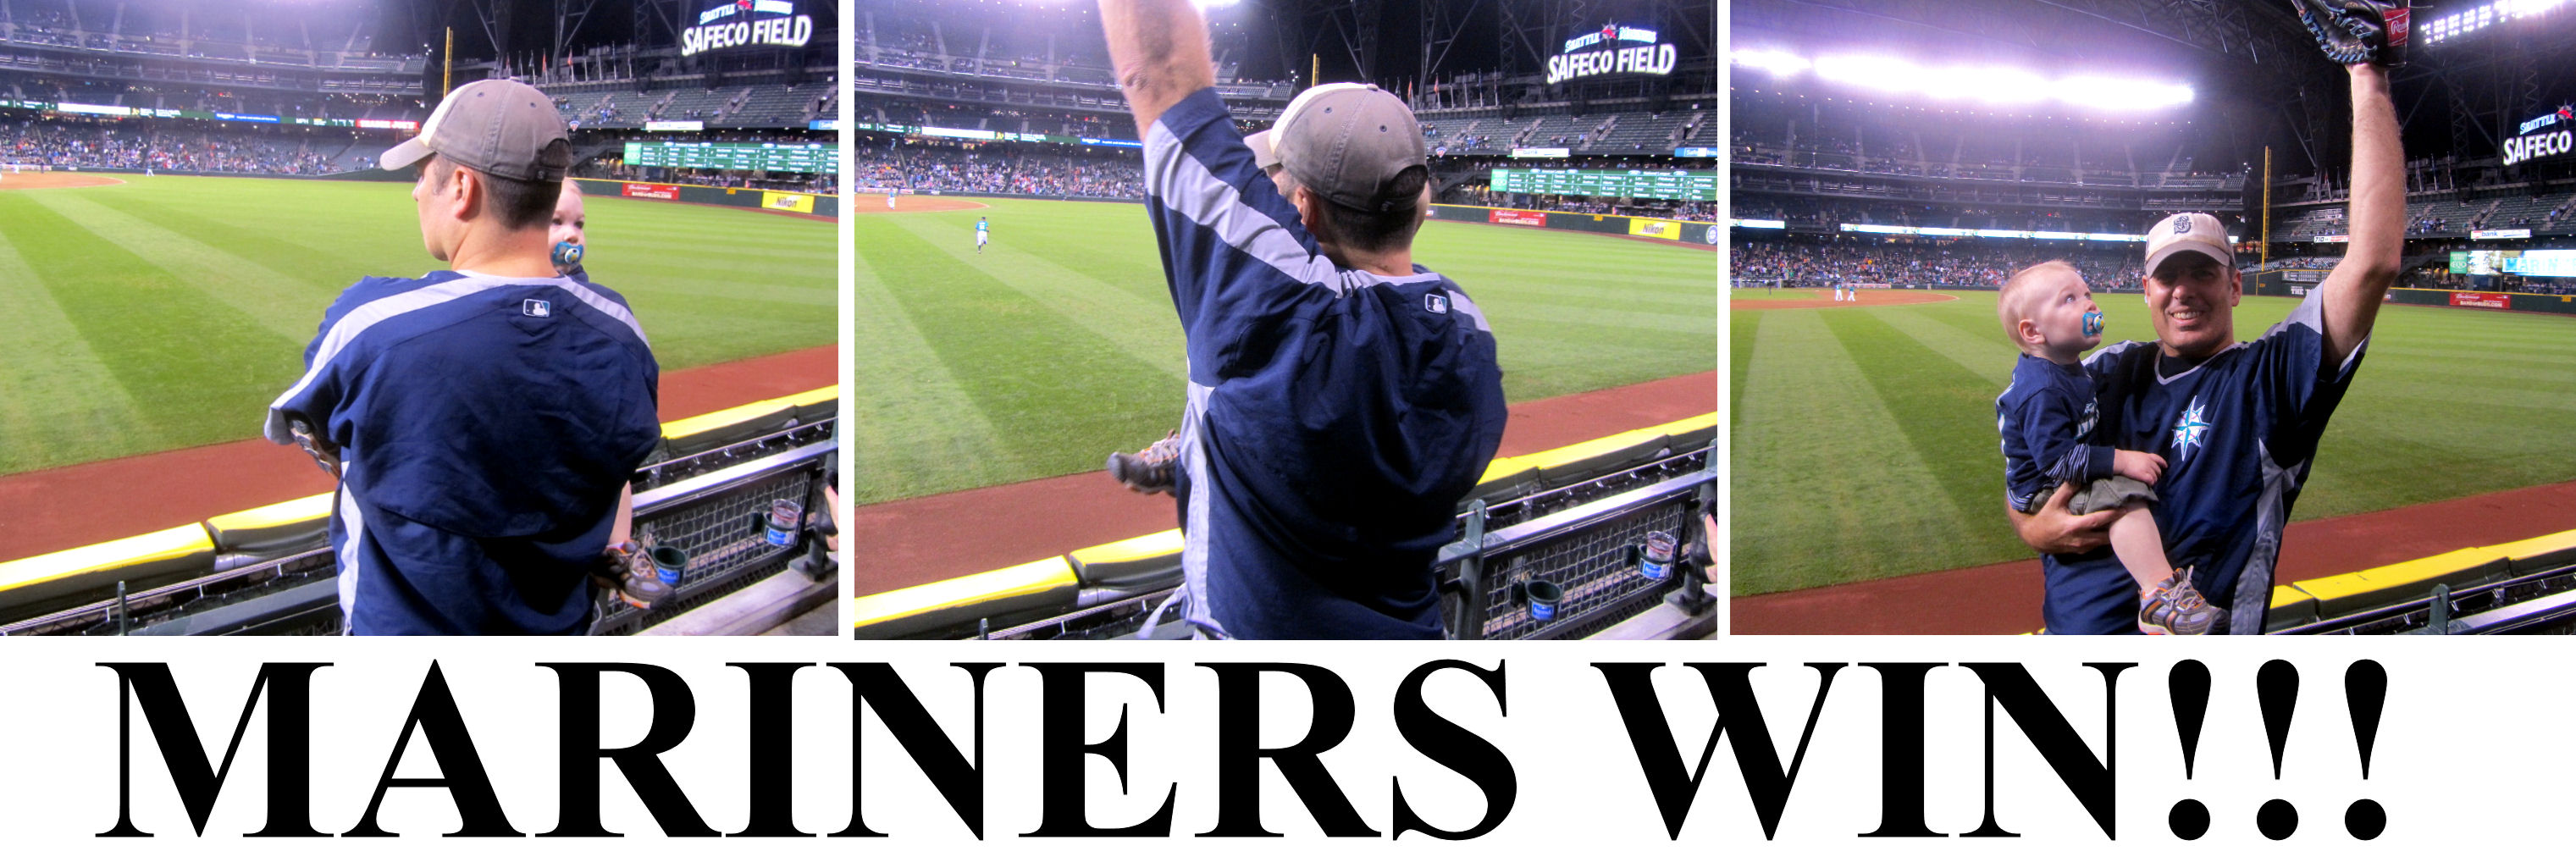 The Best MARINERS Game of 2011 (9/26/2011) « Cook & Son Bats Blog